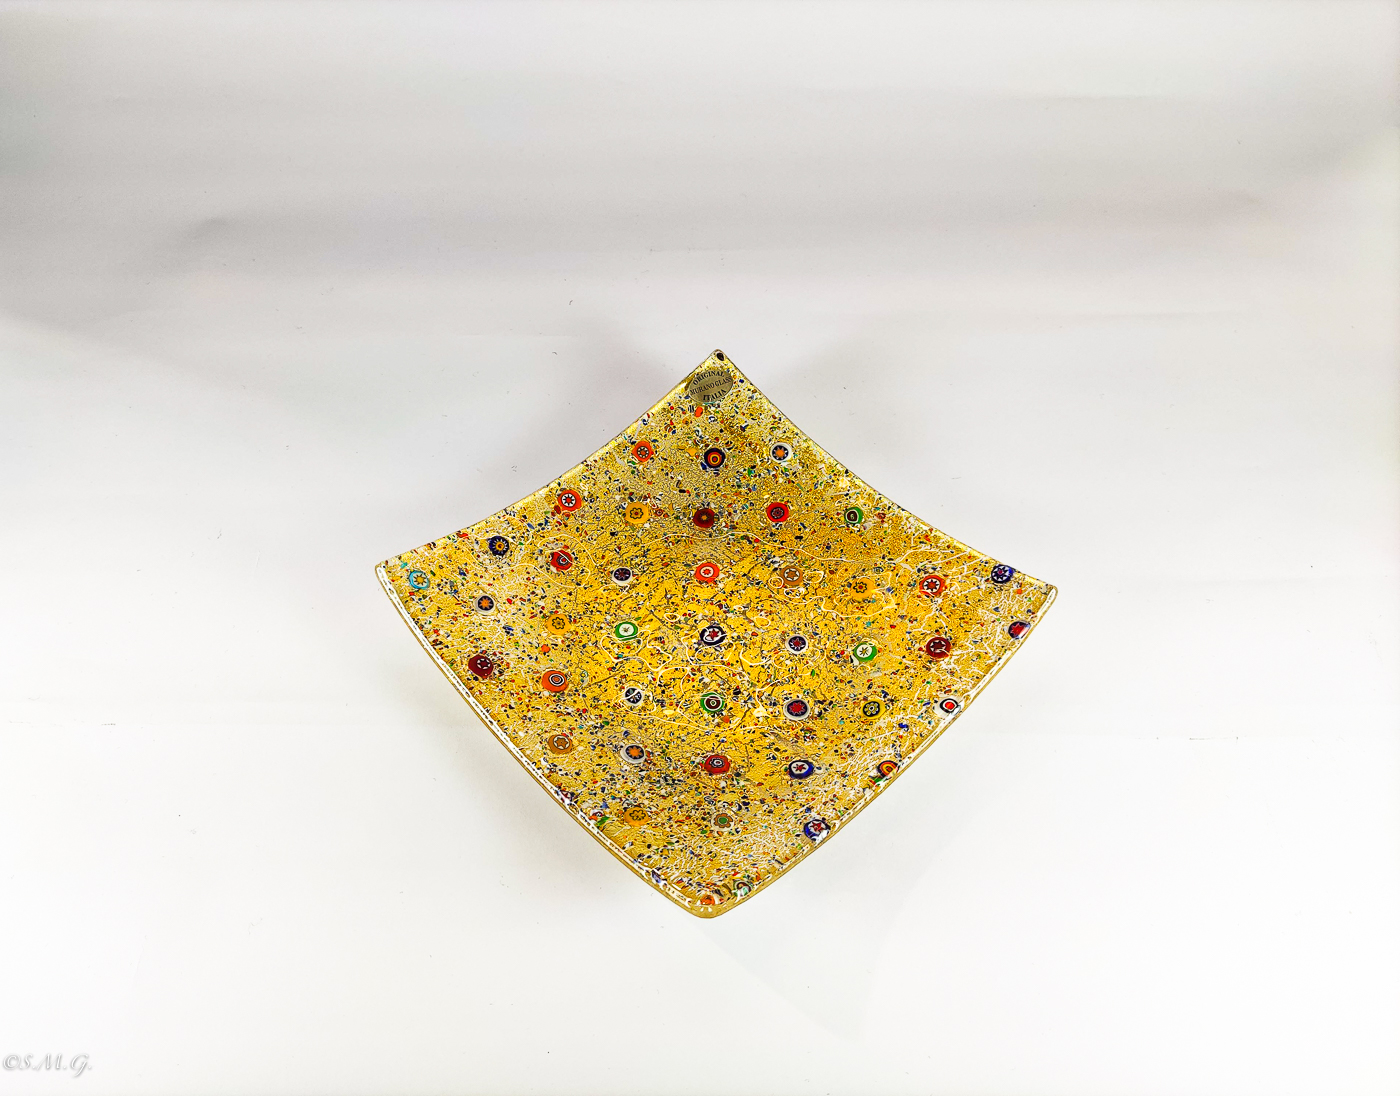 Murano Glass plate with gold and murrina inside